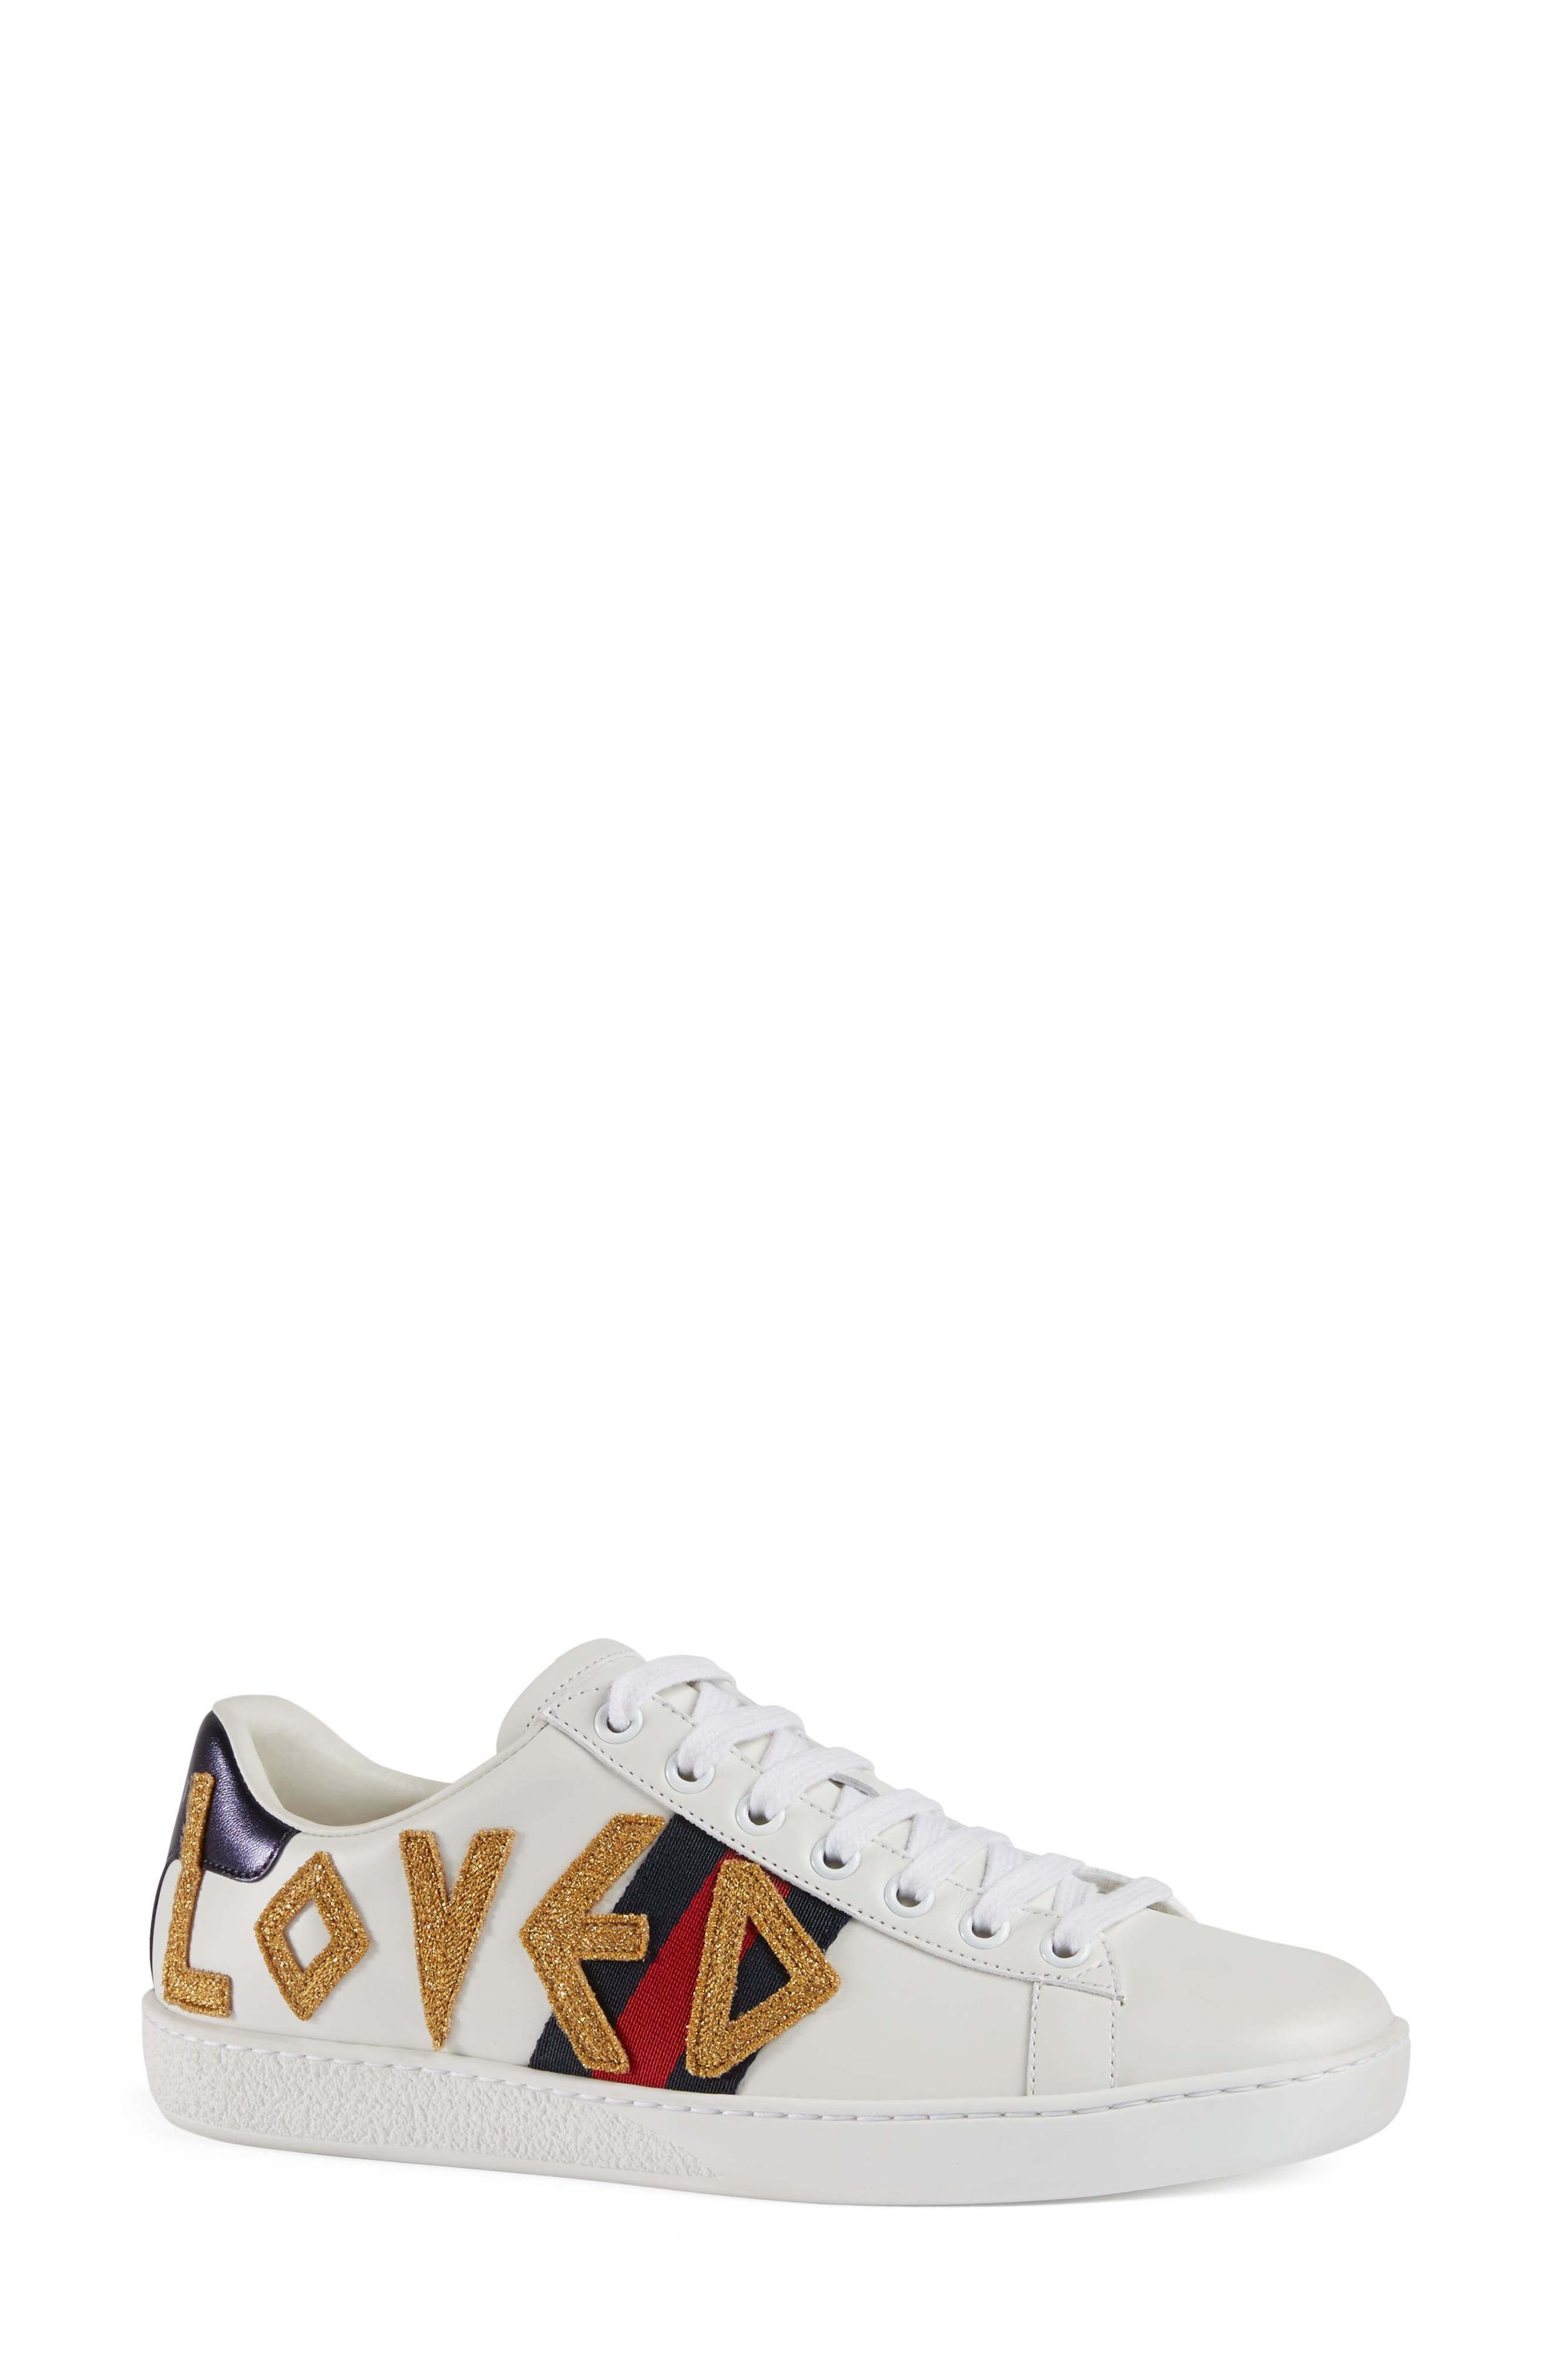 Main Image - Gucci New Ace Loved Sneakers (Women)